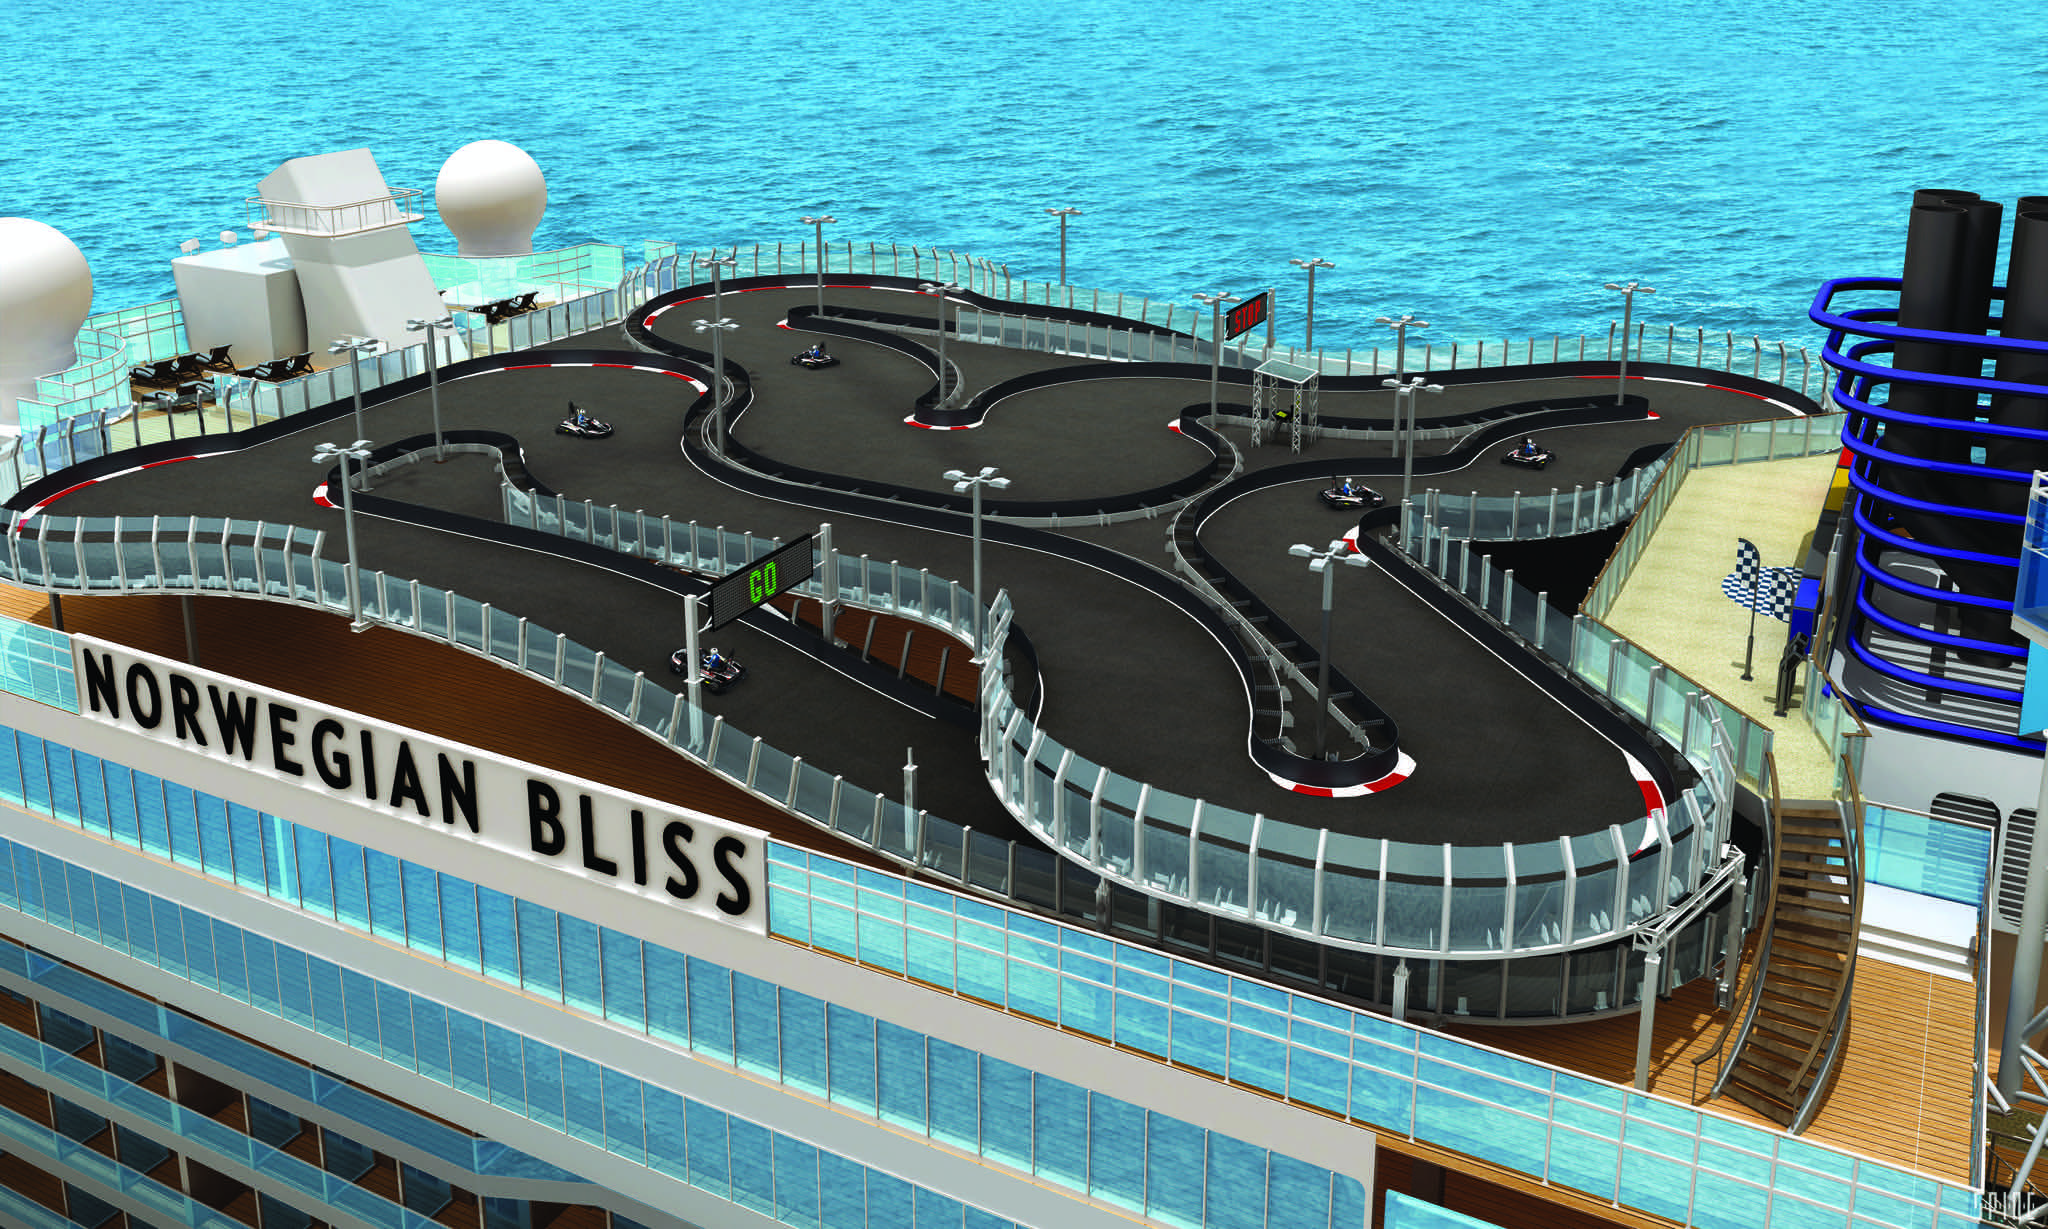 ncl bliss racetrack